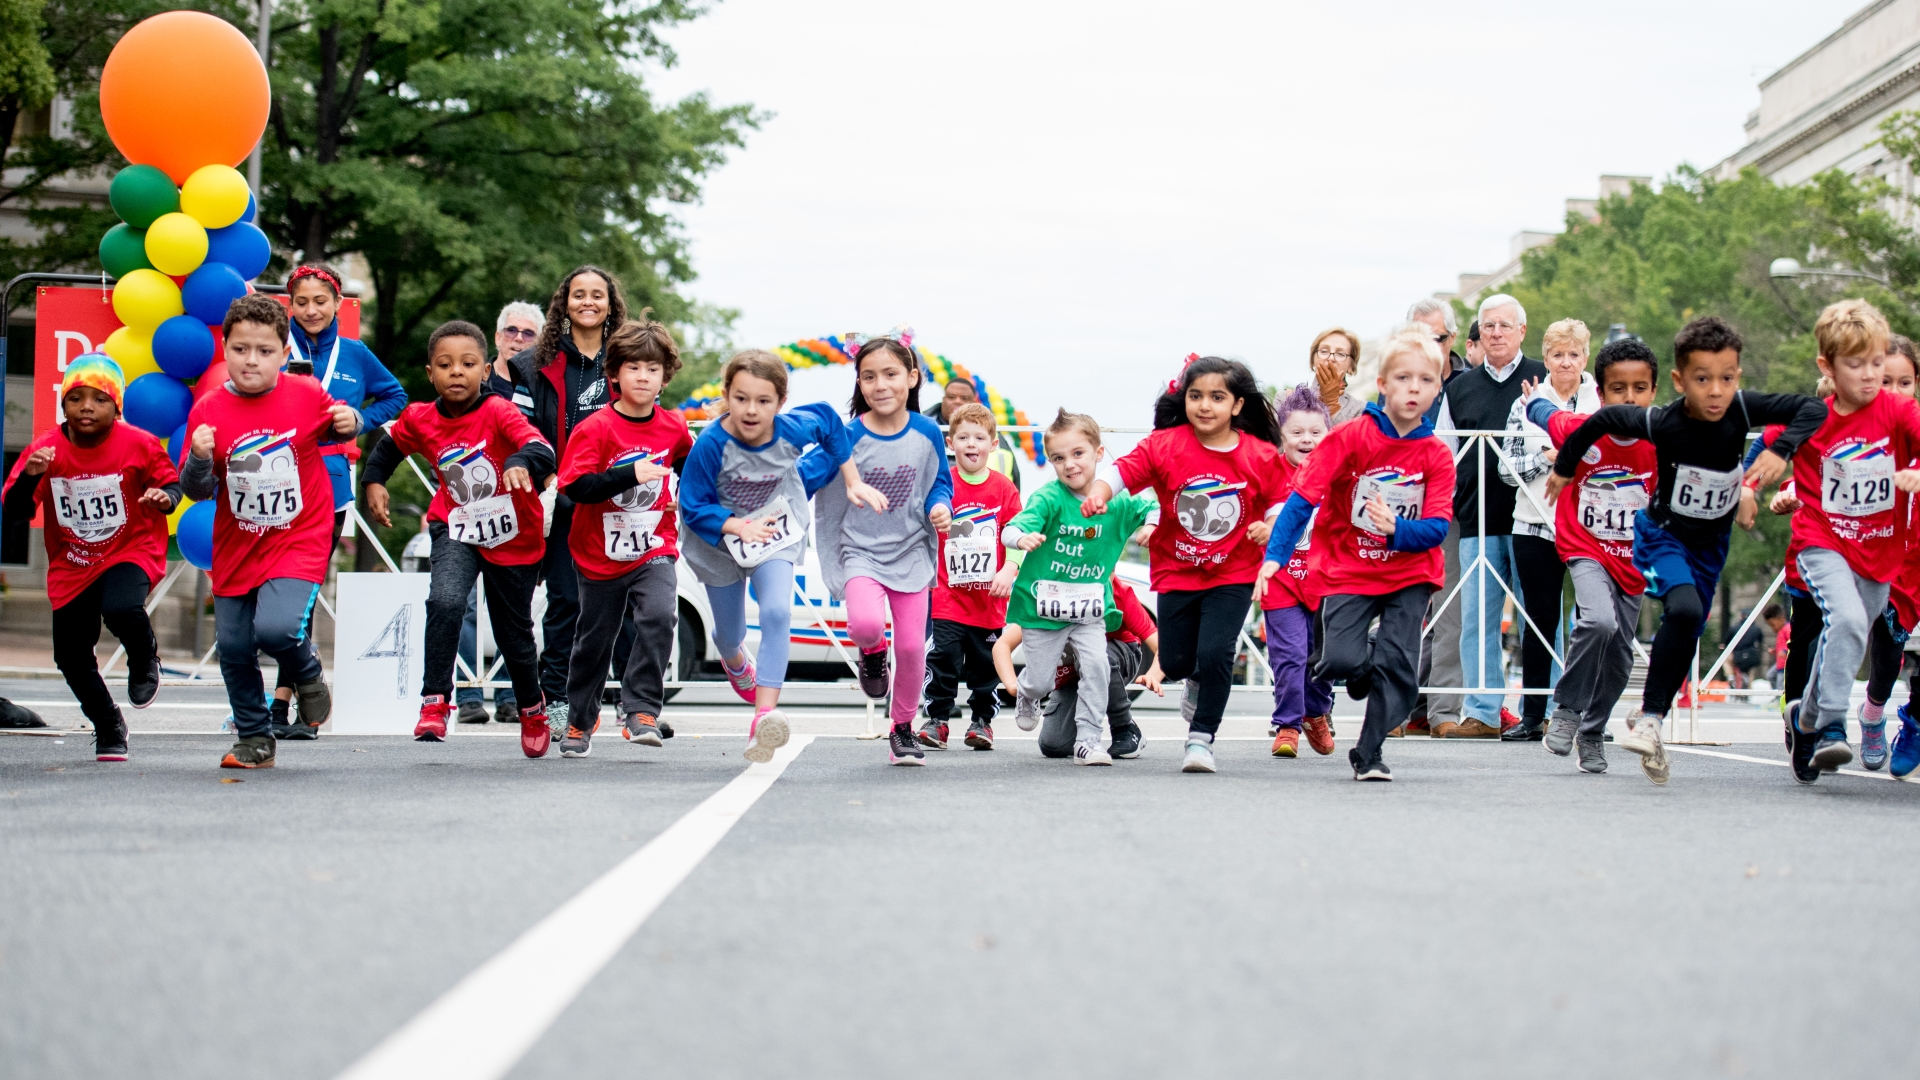 Children running during Race for Every Child